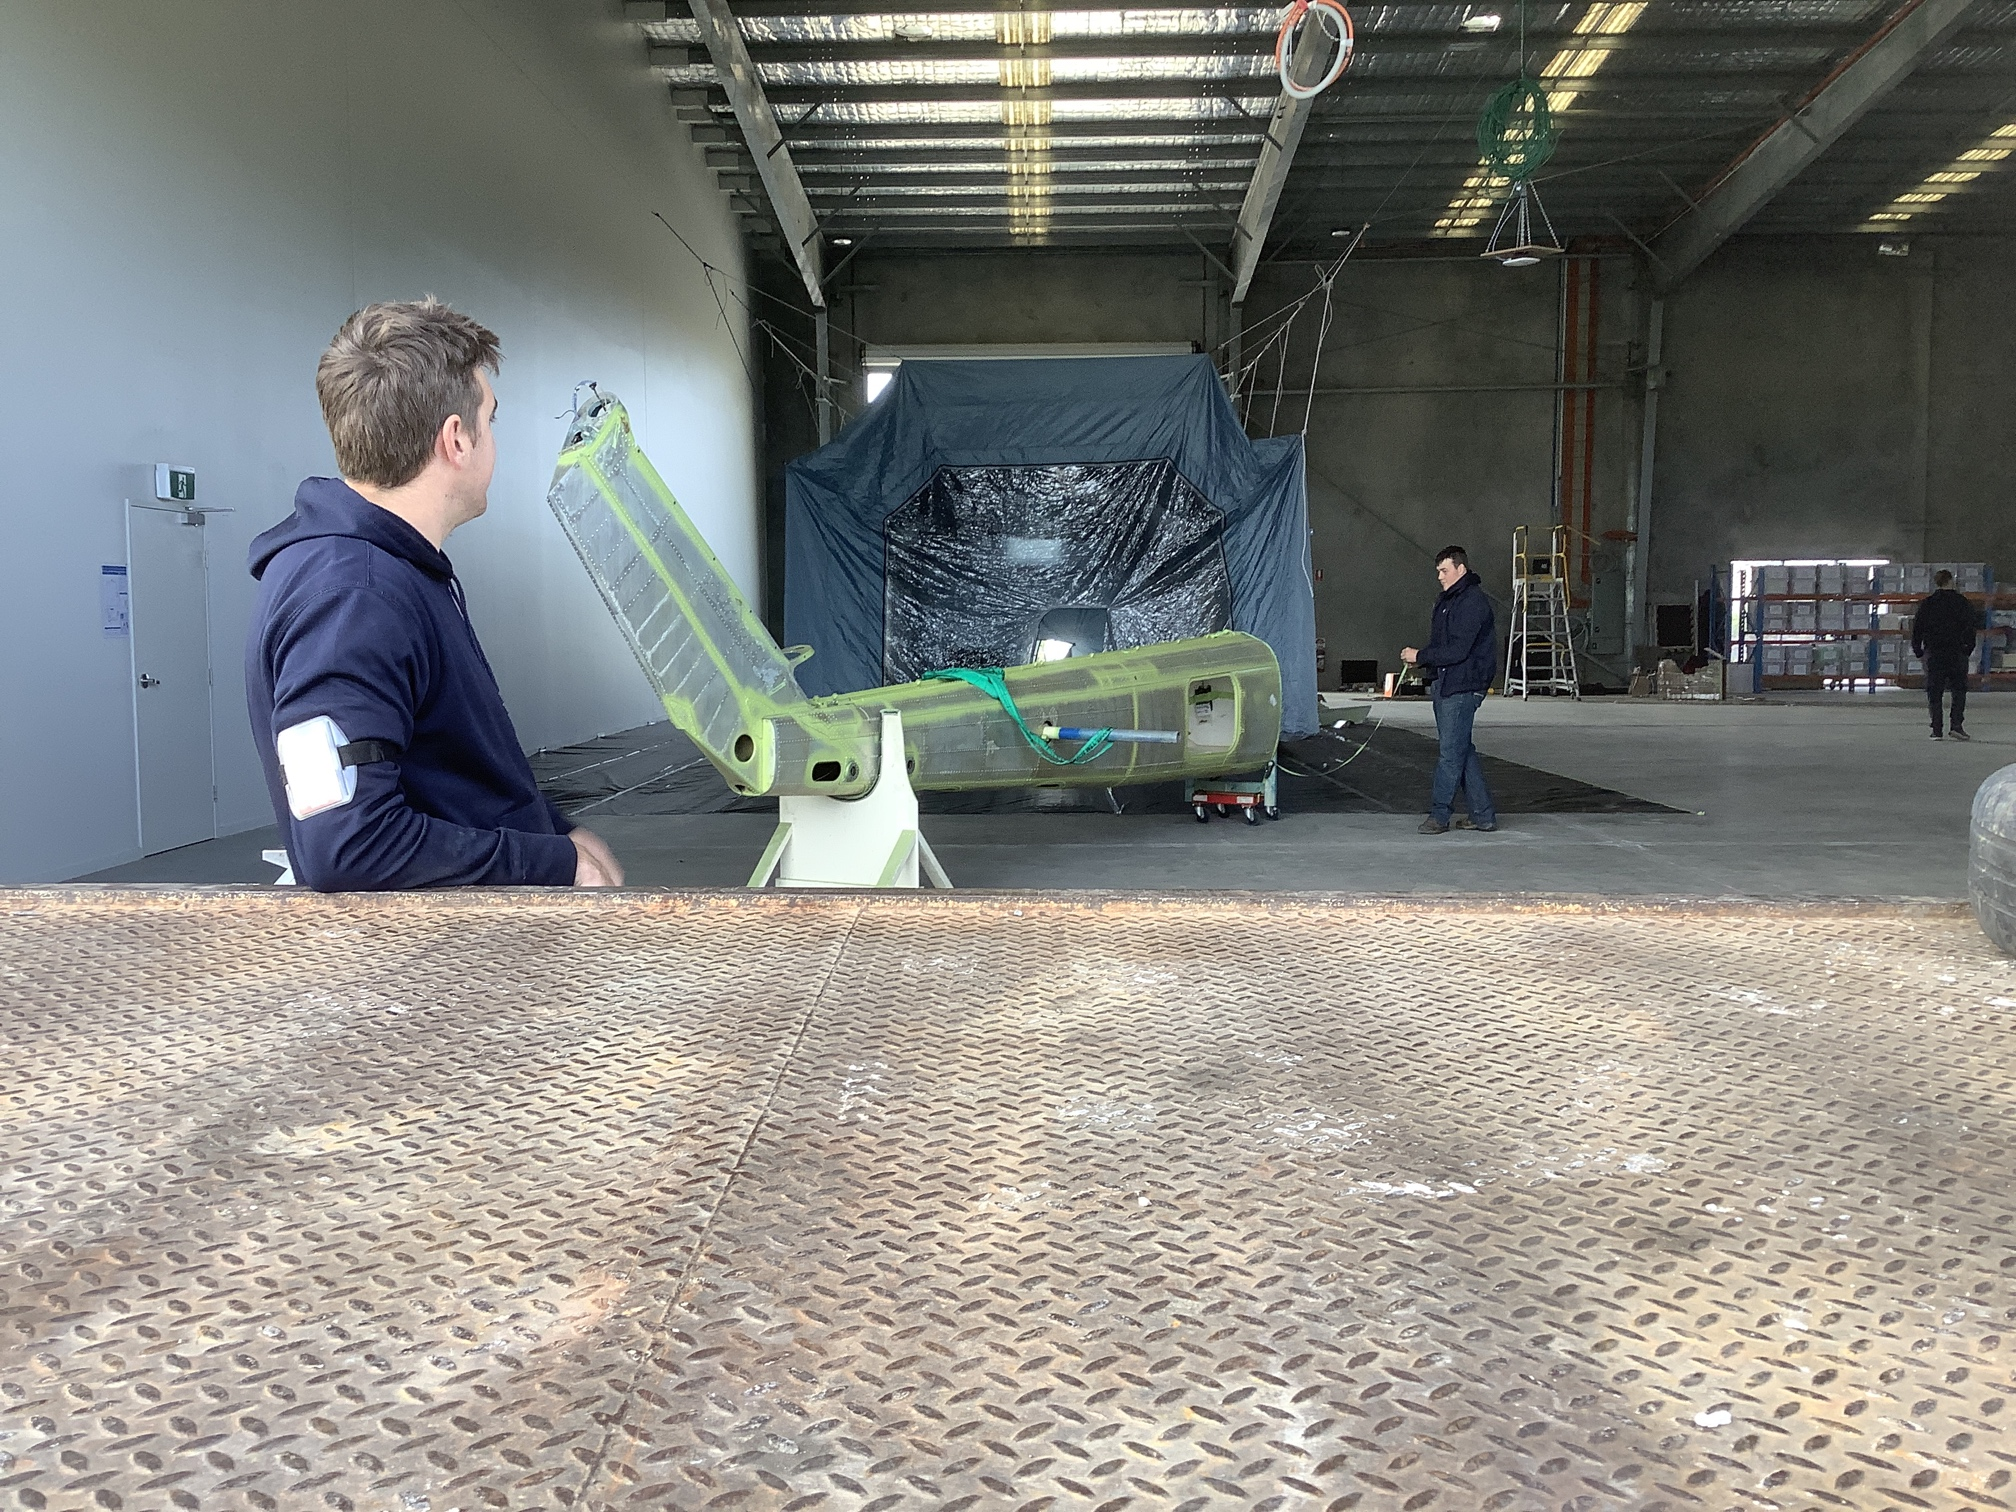 Helicopter tail unloaded